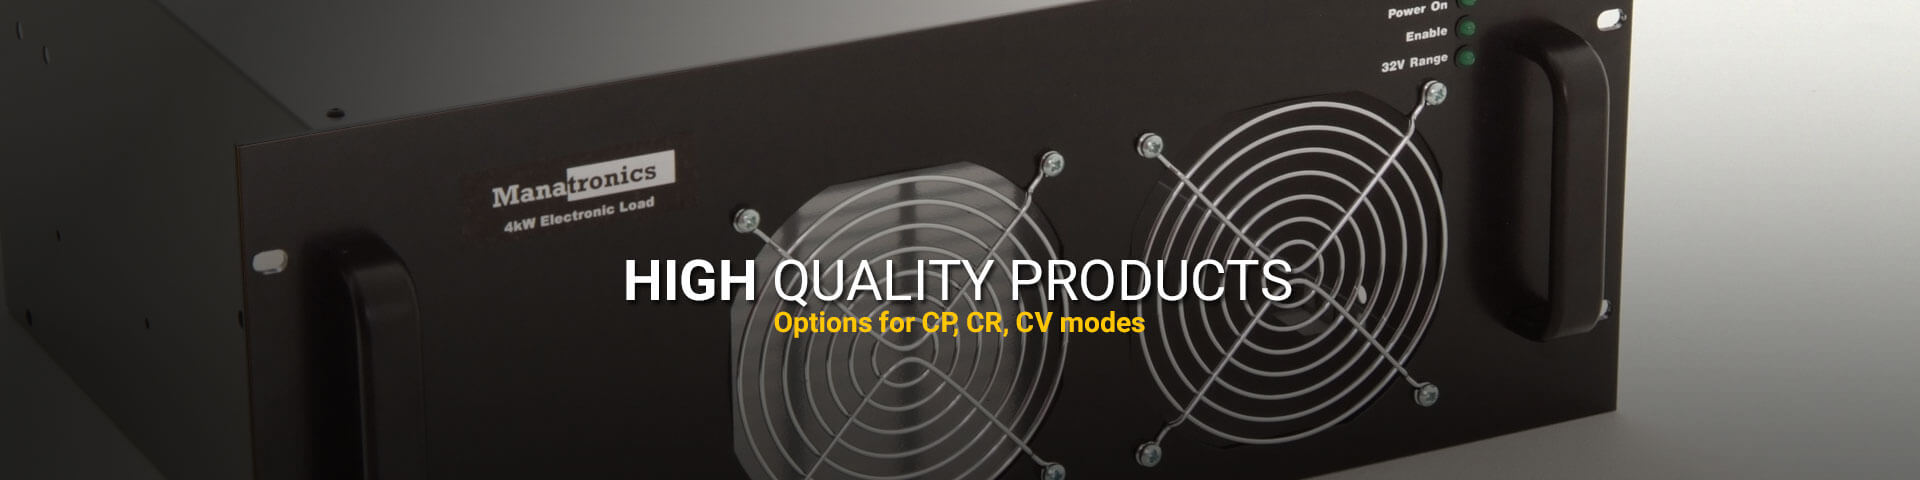 high-quality-products